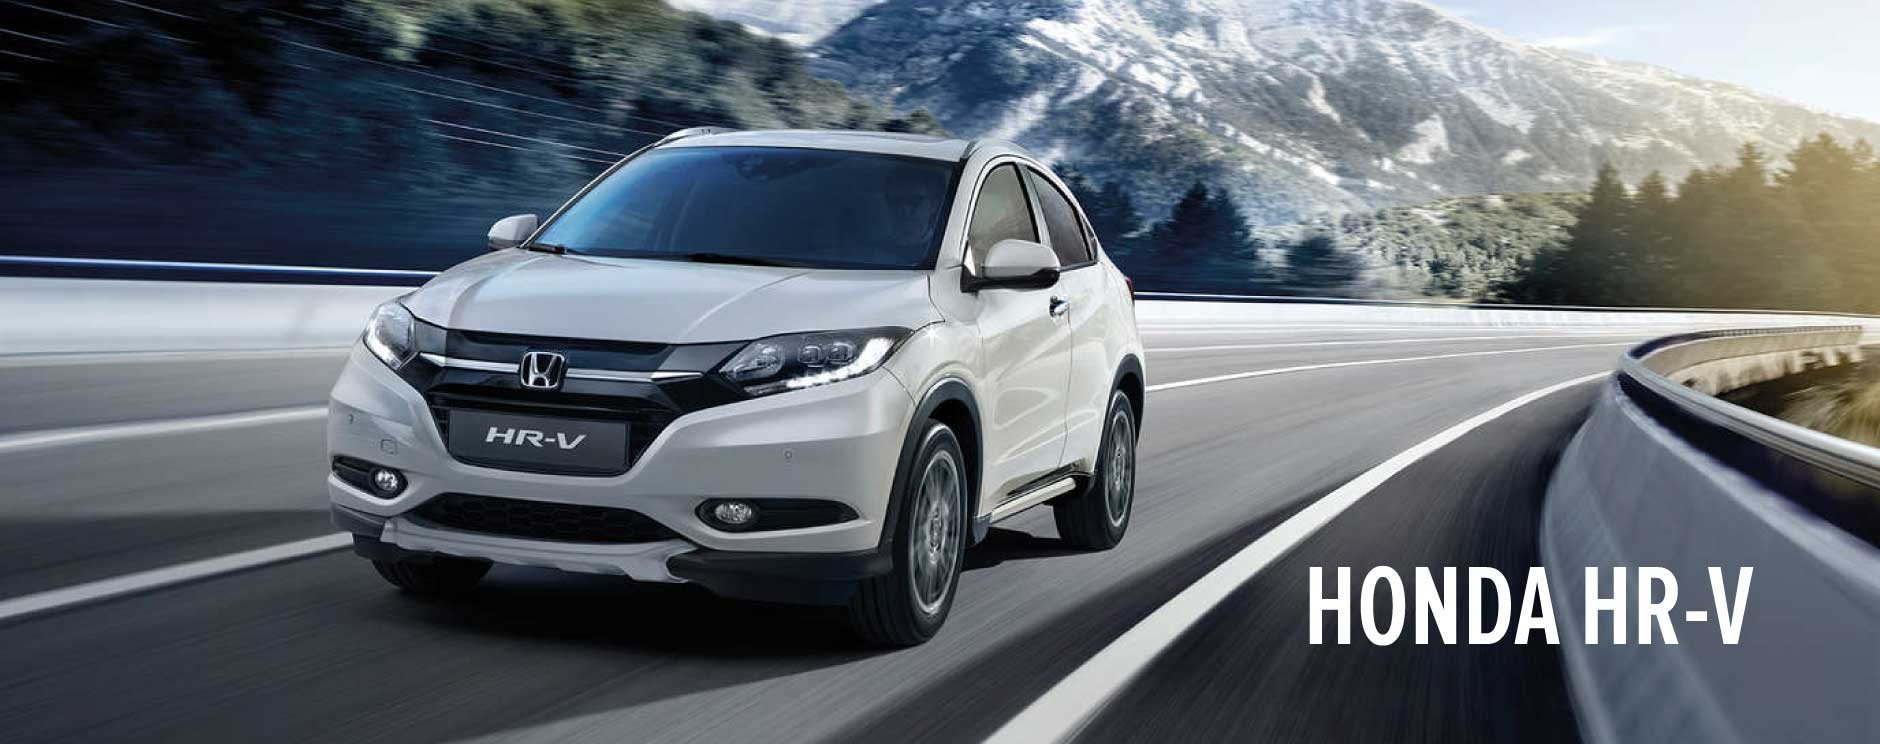 Introducing the Honda HR-V